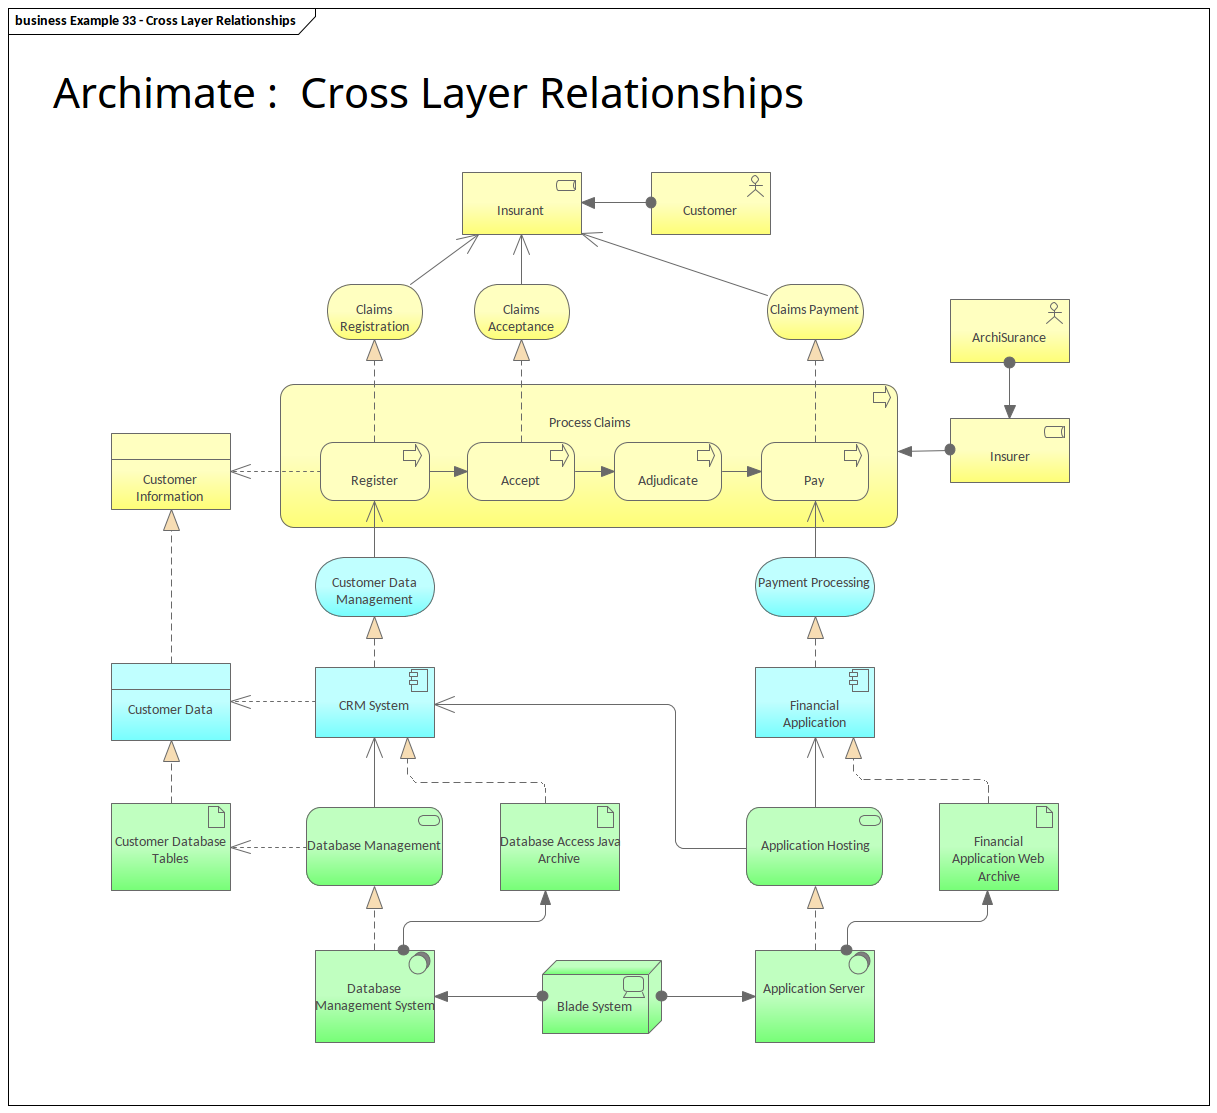 Archimate Diagram showing Cross Layer Relationships